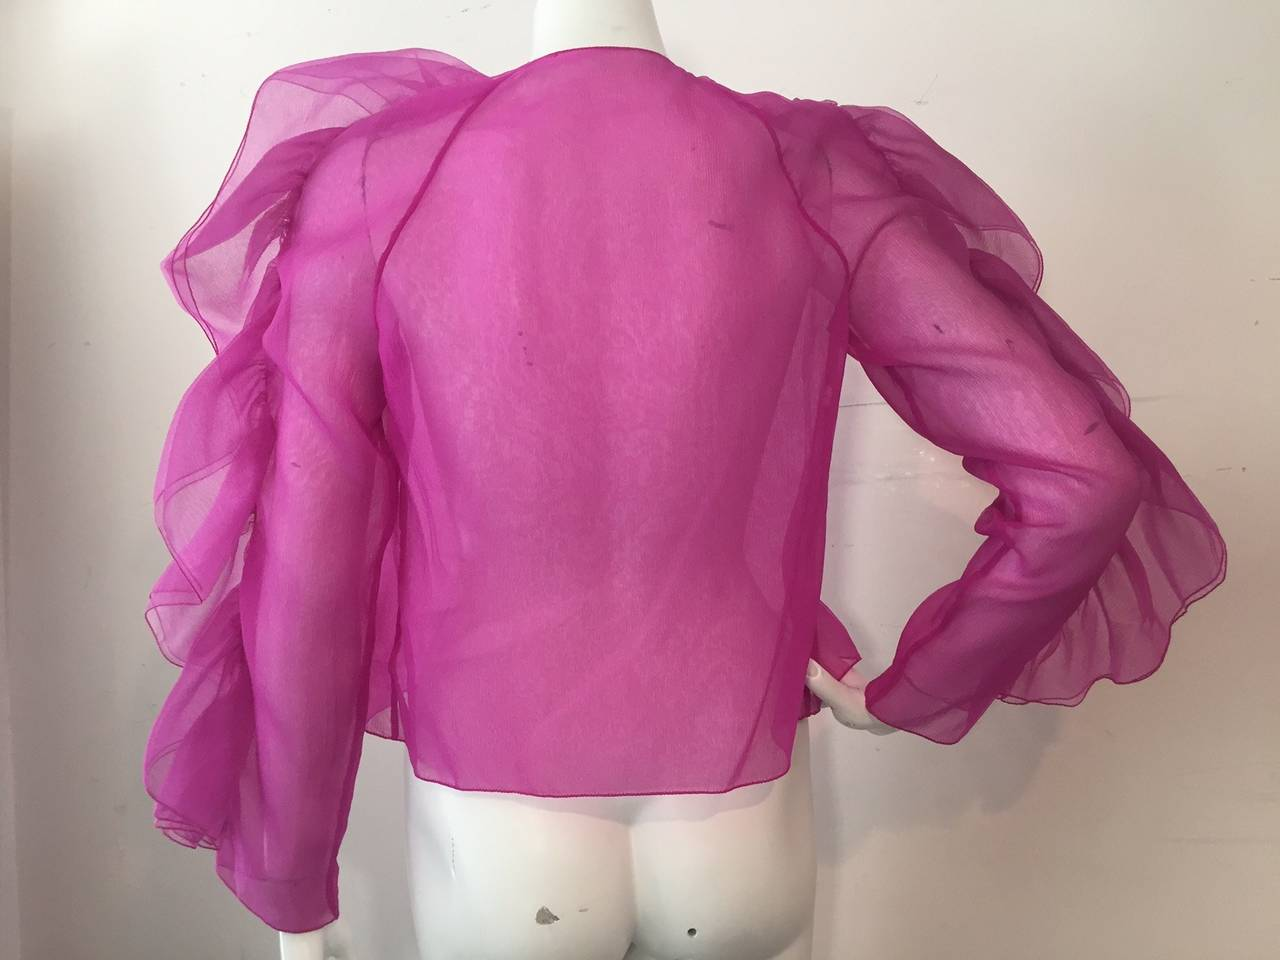 1980s Fuchsia Organza Ruffled-Sleeve Blouse In Excellent Condition For Sale In San Francisco, CA